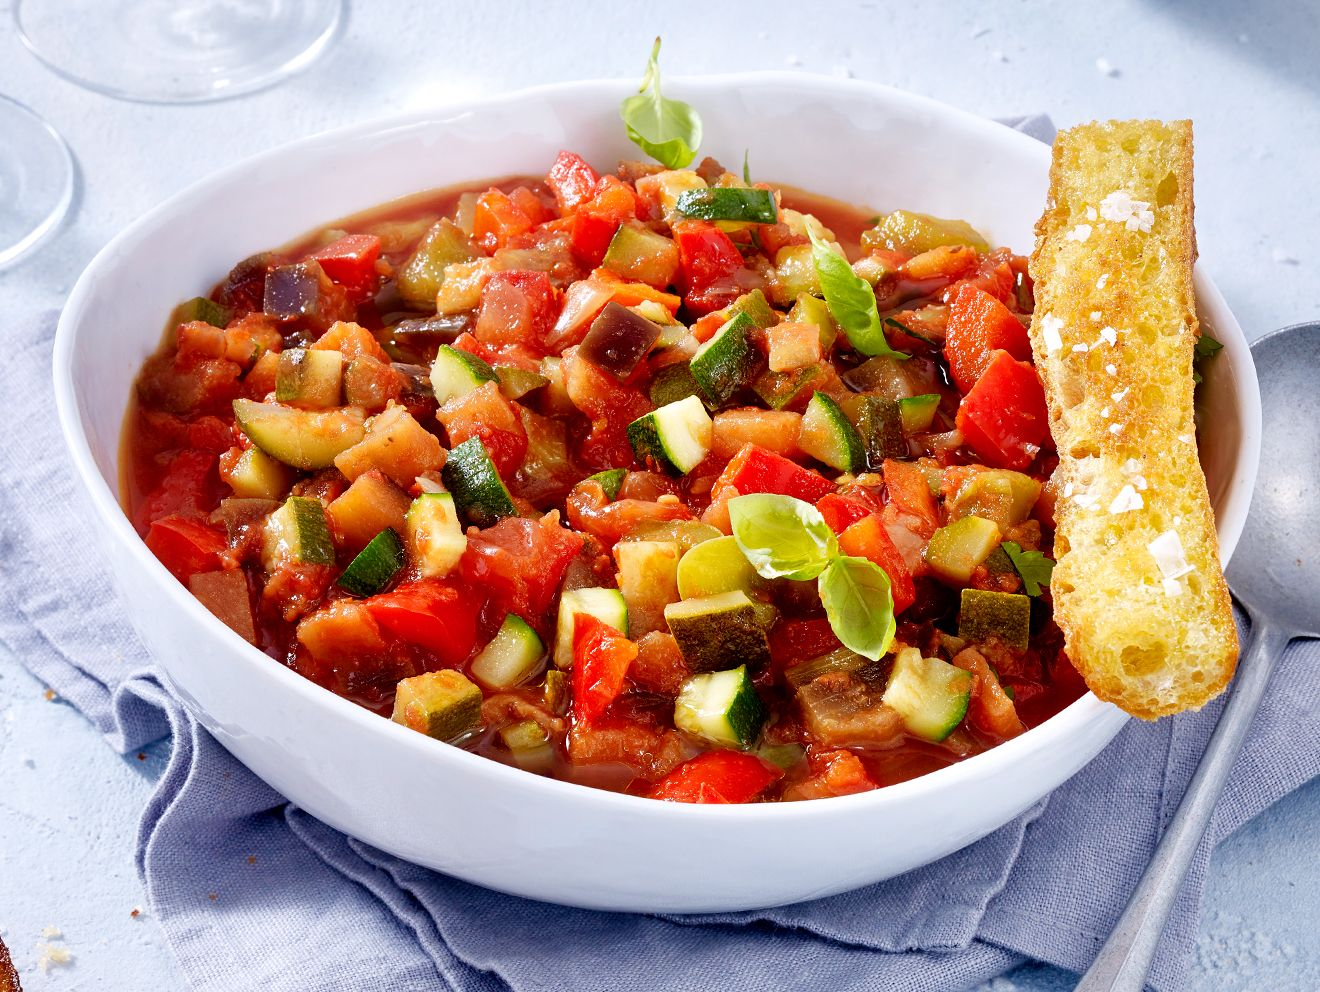 Klassisches Ratatouille - Original-Rezept | LECKER #mexicanfoodrecipes